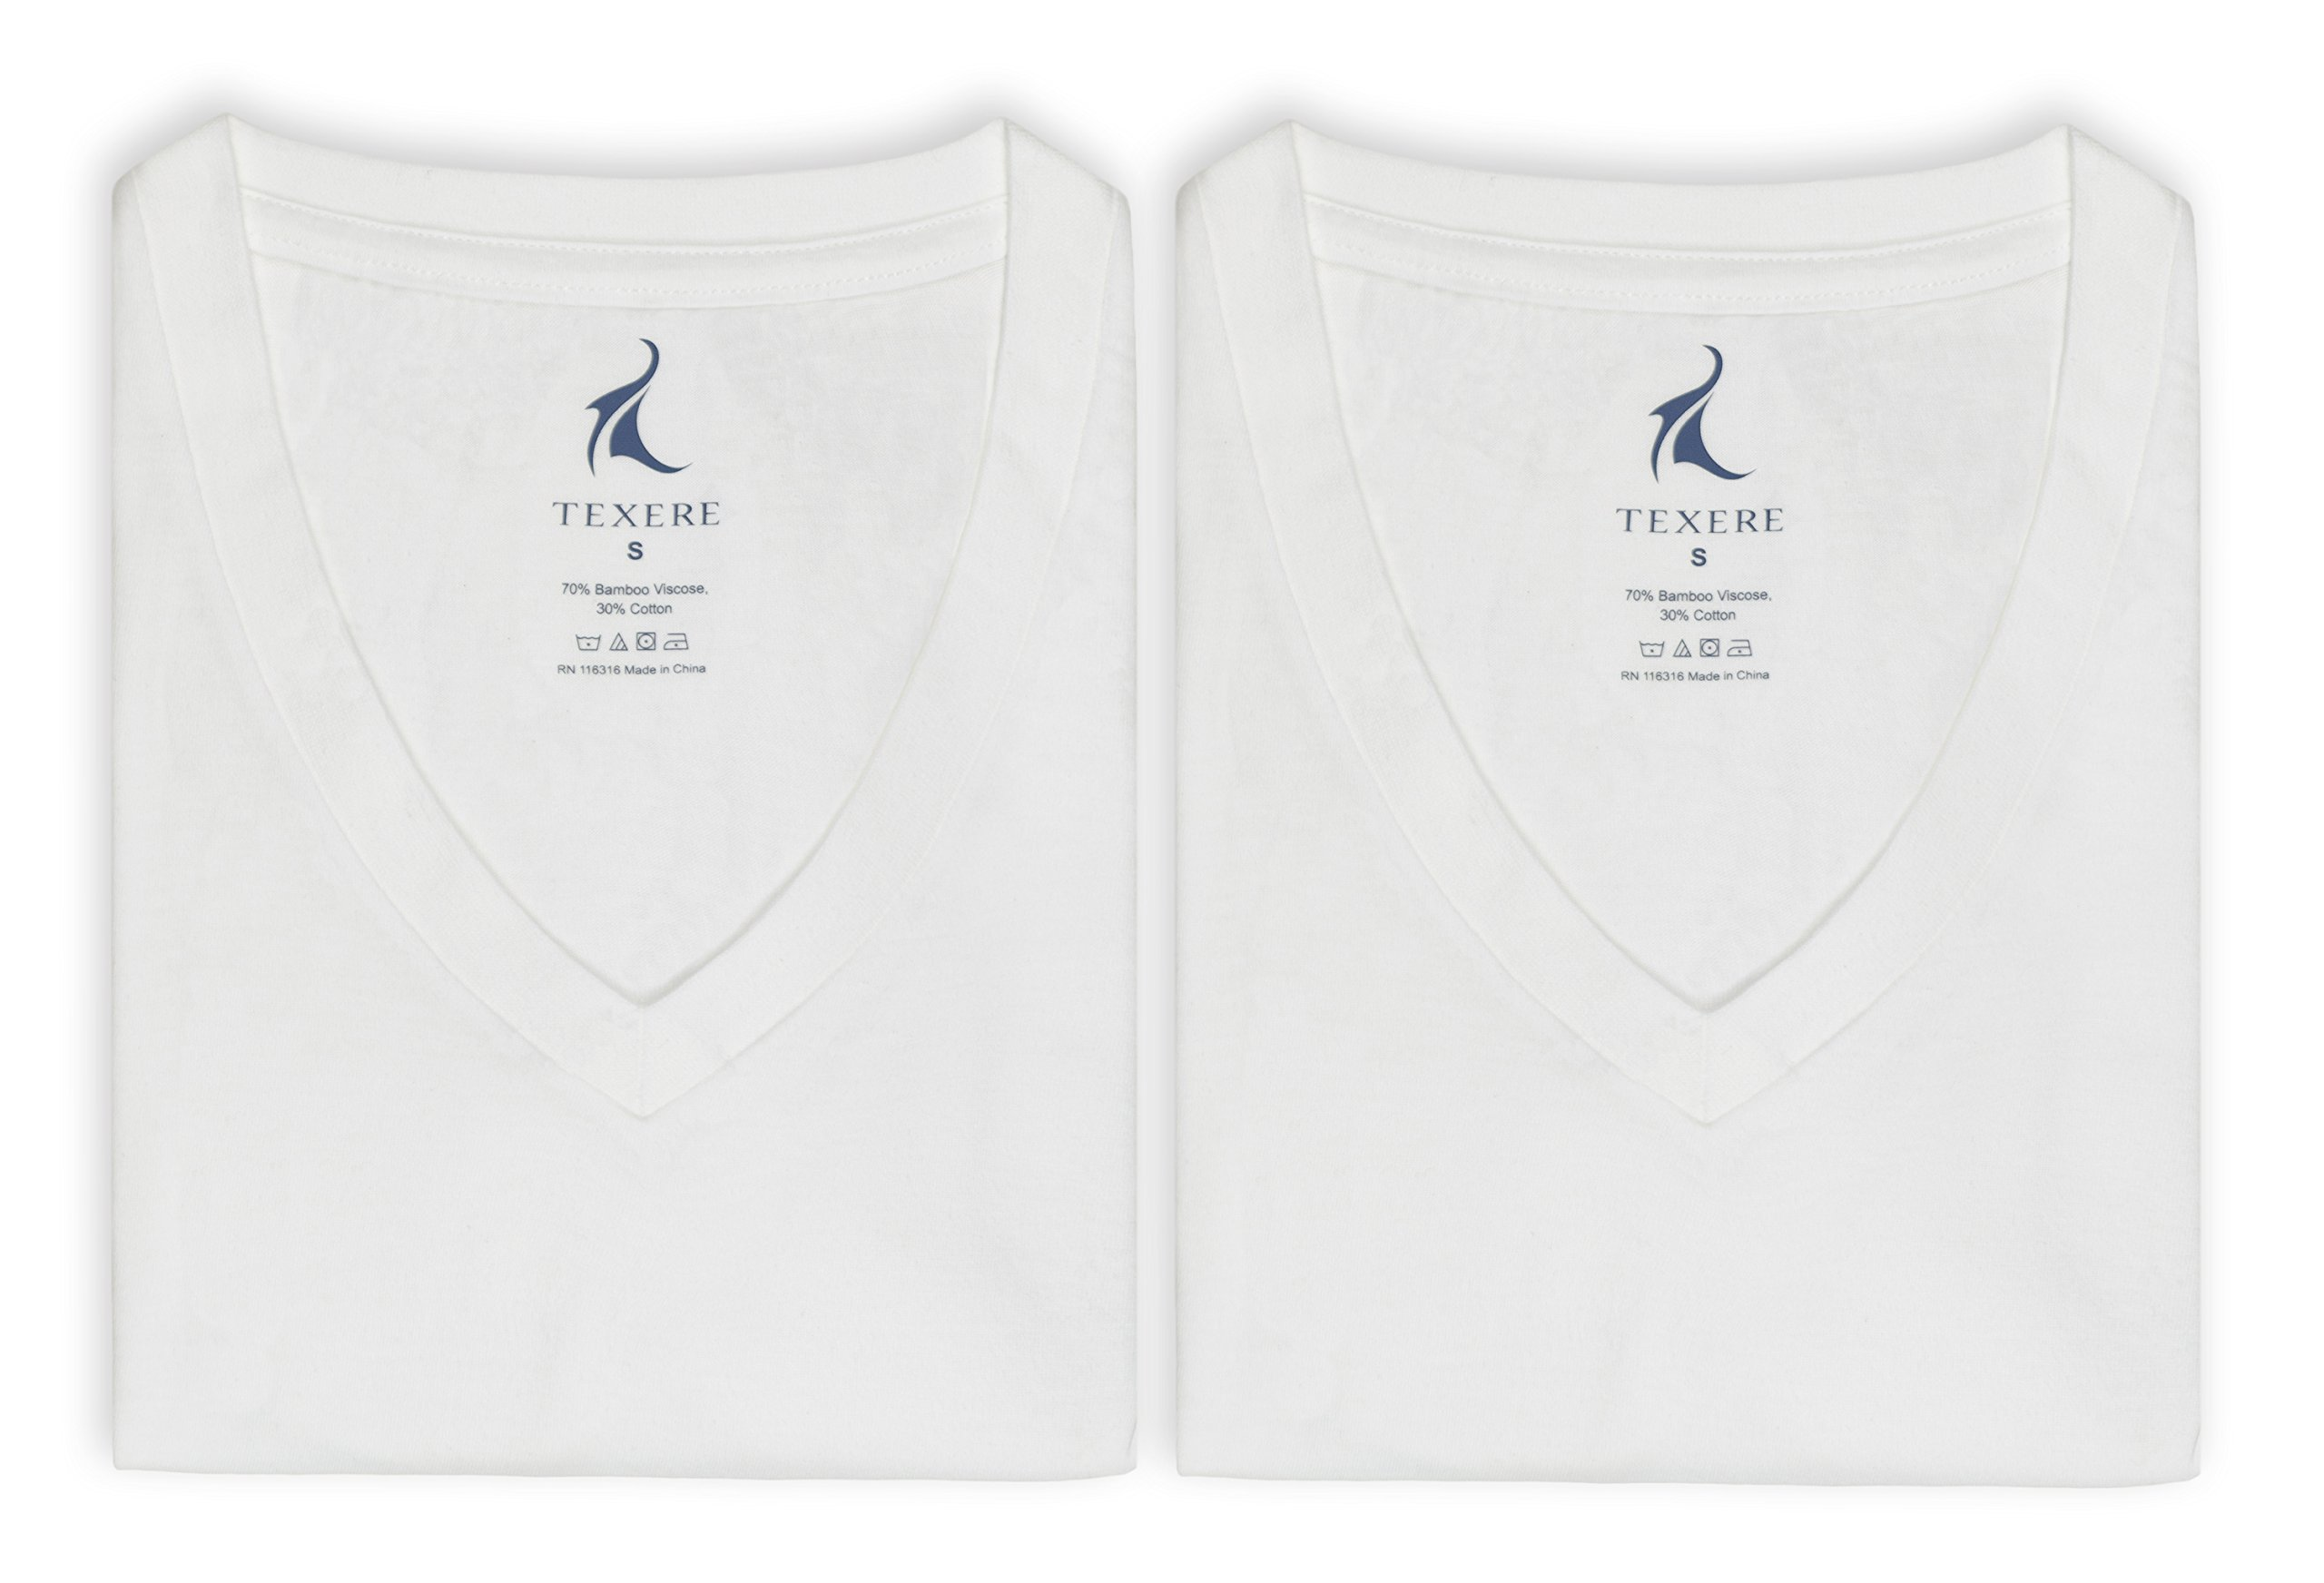 Texere Men's V-Neck 2 Pack Undershirt (Meio, Natural White, MT) Best Gift by TexereSilk